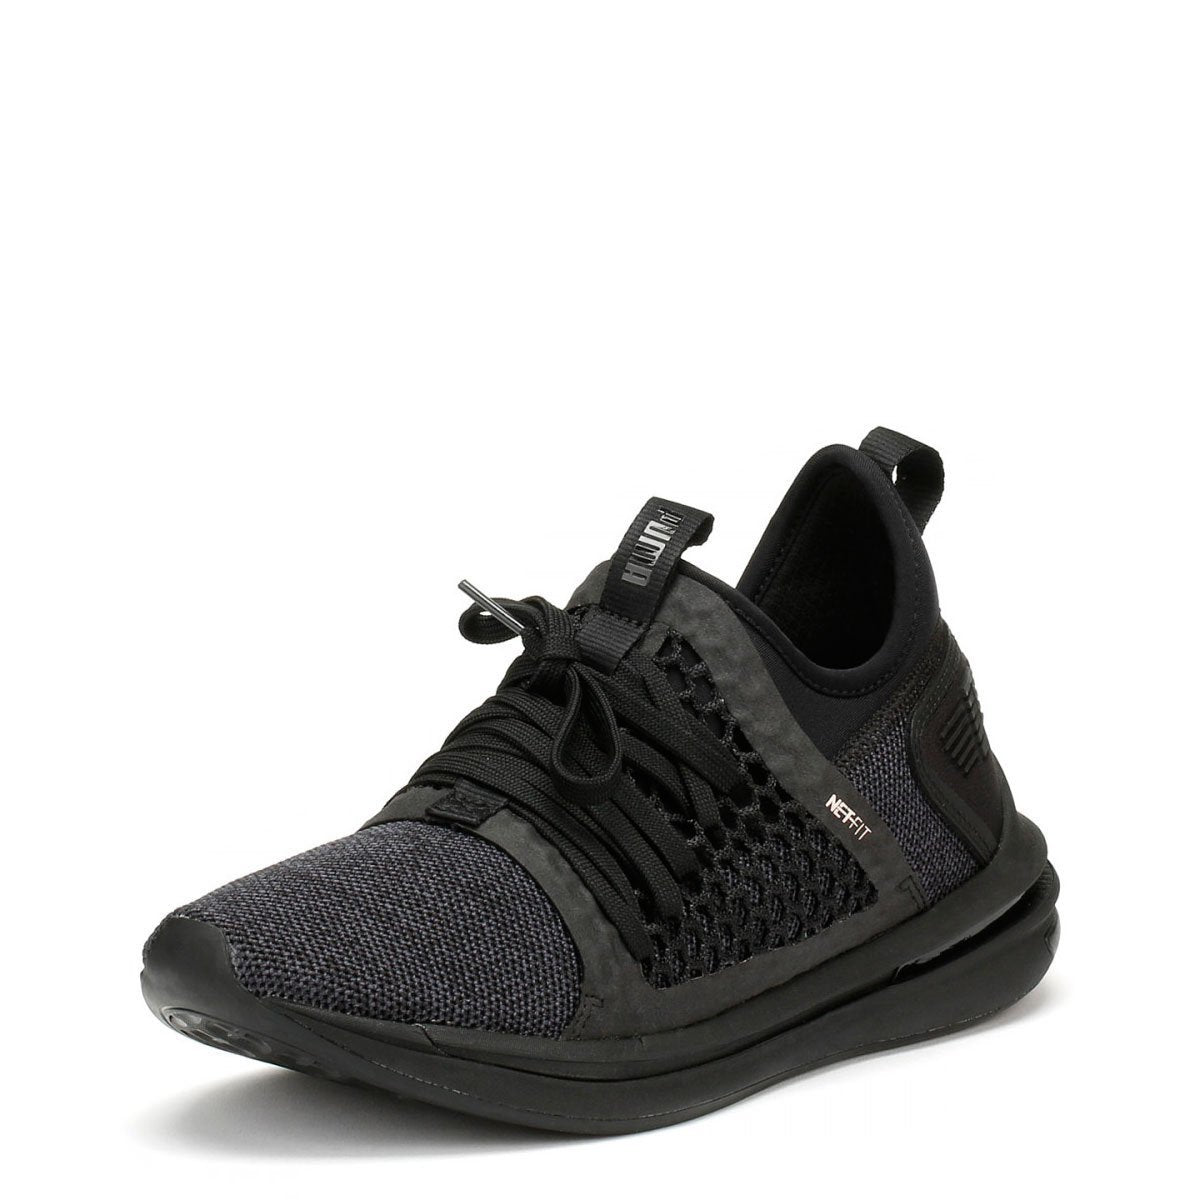 connecté rachat puma ignite limitless sr netfit 190962 02